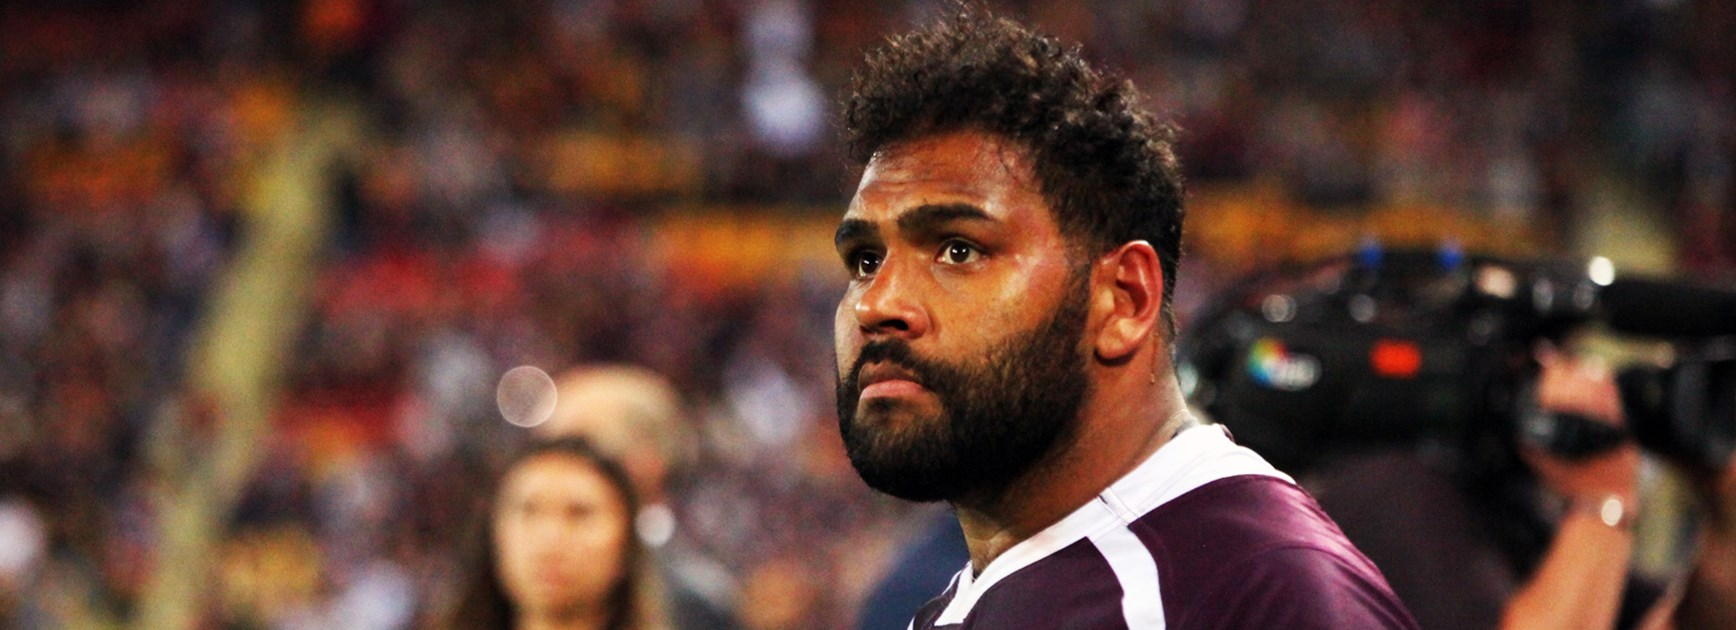 Thaiday: How to fail an HIA